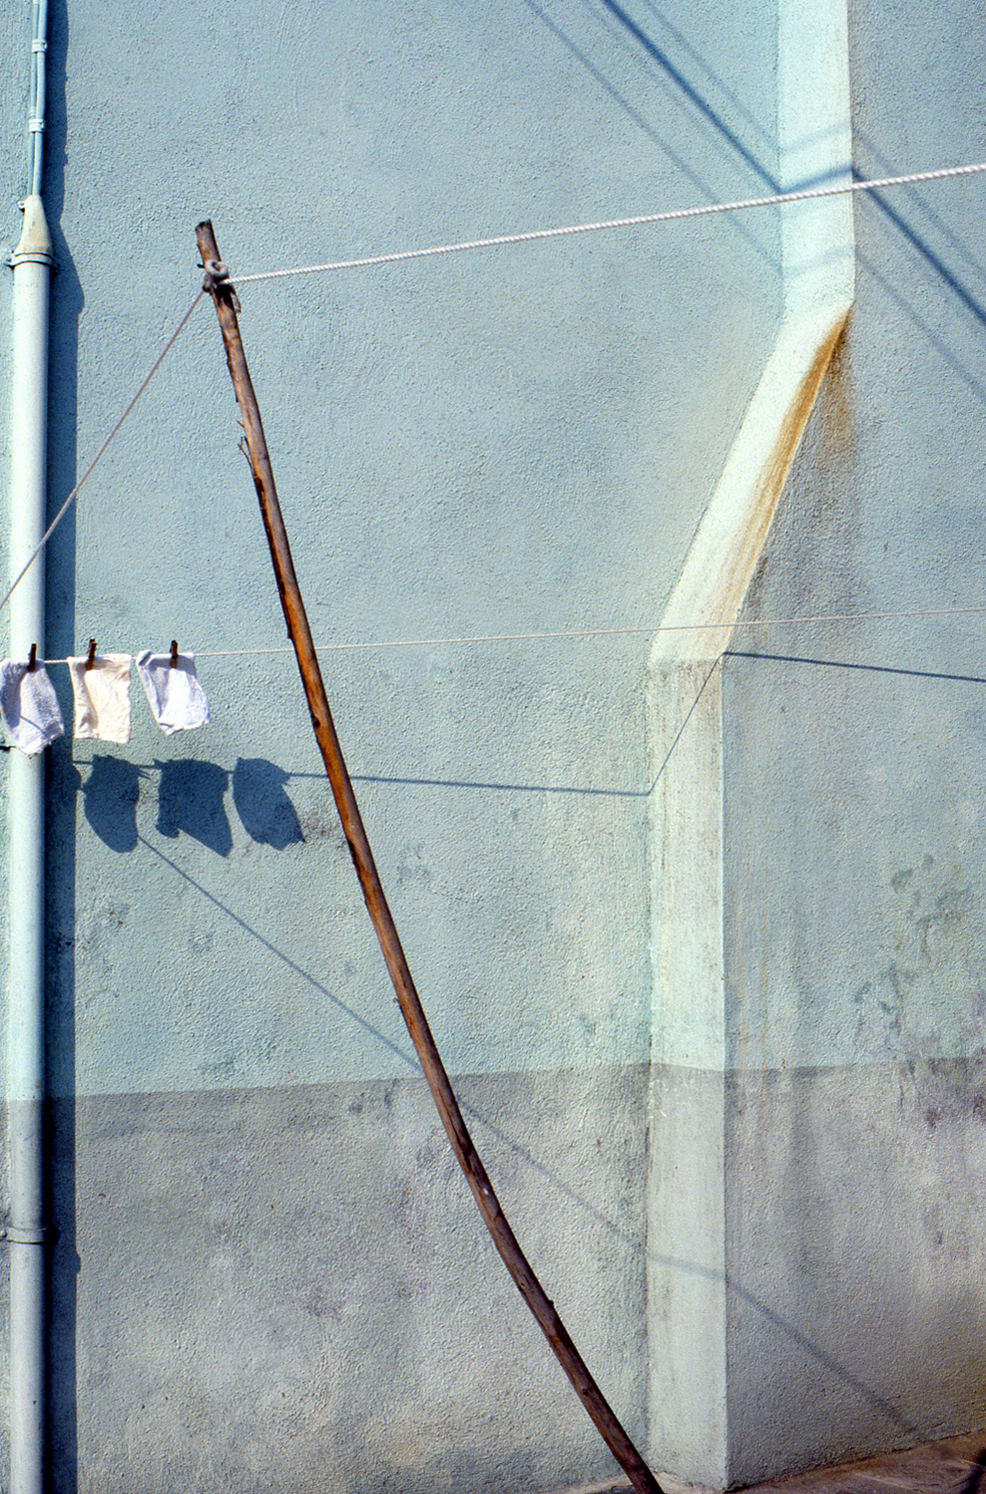 Clothesline, Burano Italy, 1978 , Cibachrome Print, 24 x 16cm, Edition of 10.                            Exhibition:  Burano Colour Works , Australian Centre for Photography, Sydney; Solander Gallery, Canberra; Wagga Wagga City Art Gallery, Wagga Wagga, 1979.